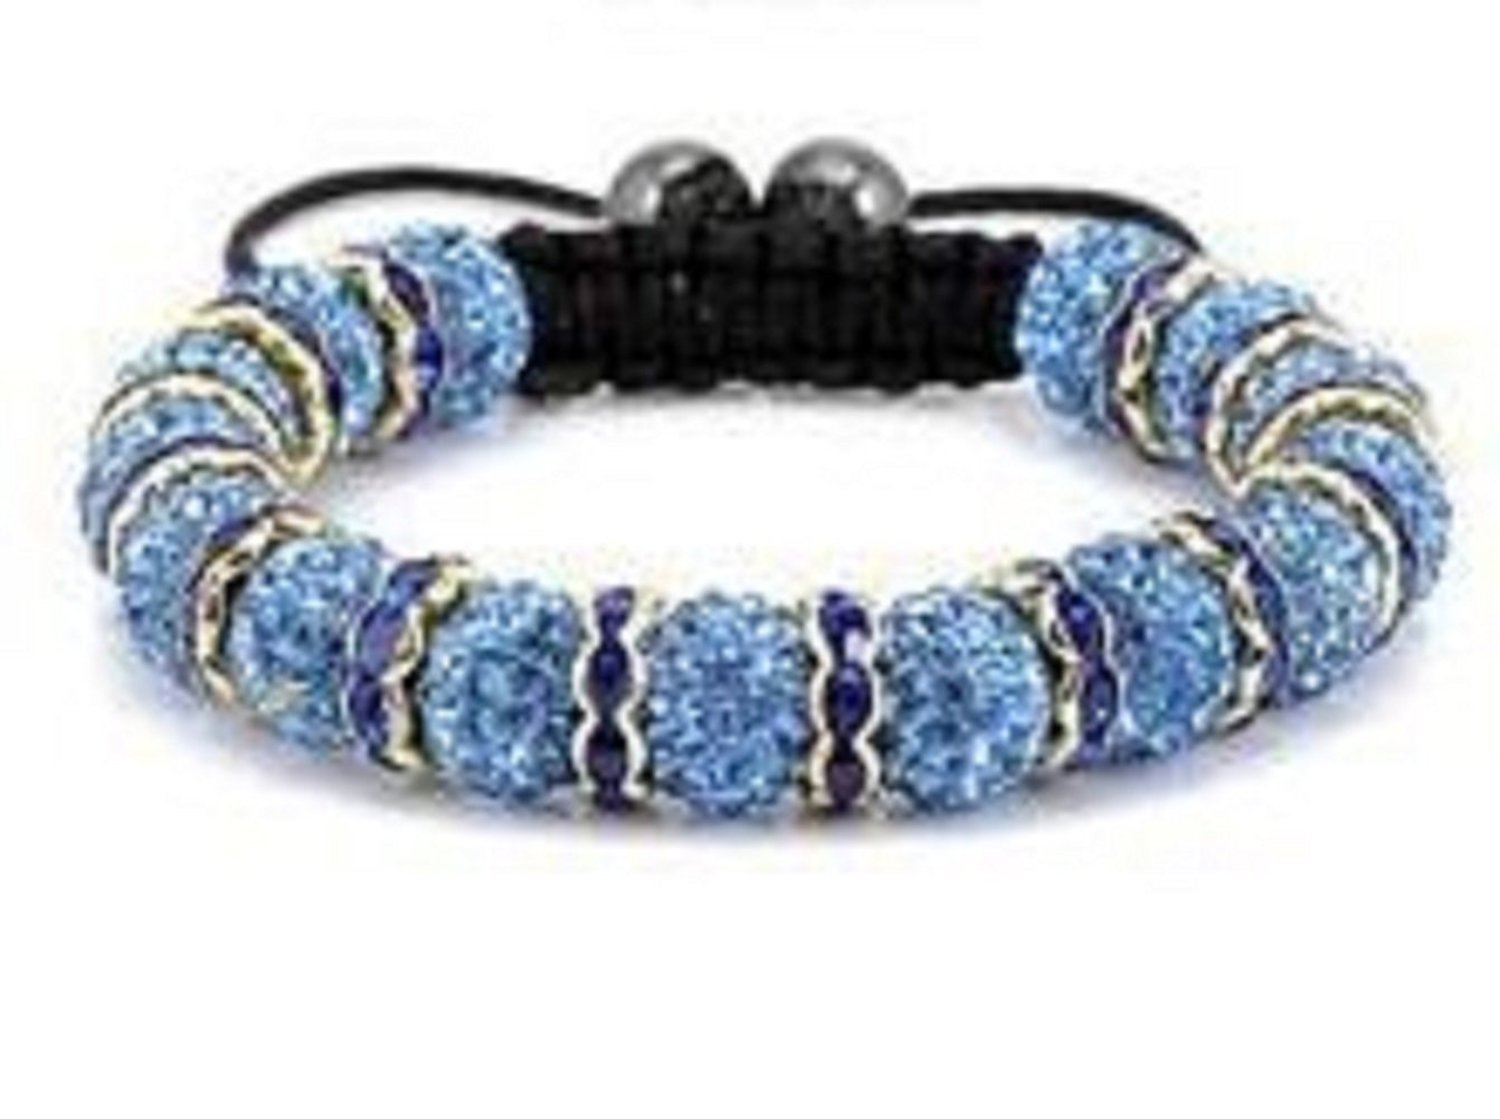 Sky Blue on Navy Blue Links Shamballa Bracelet Continuous Row of 15 Pave Crystal Balls